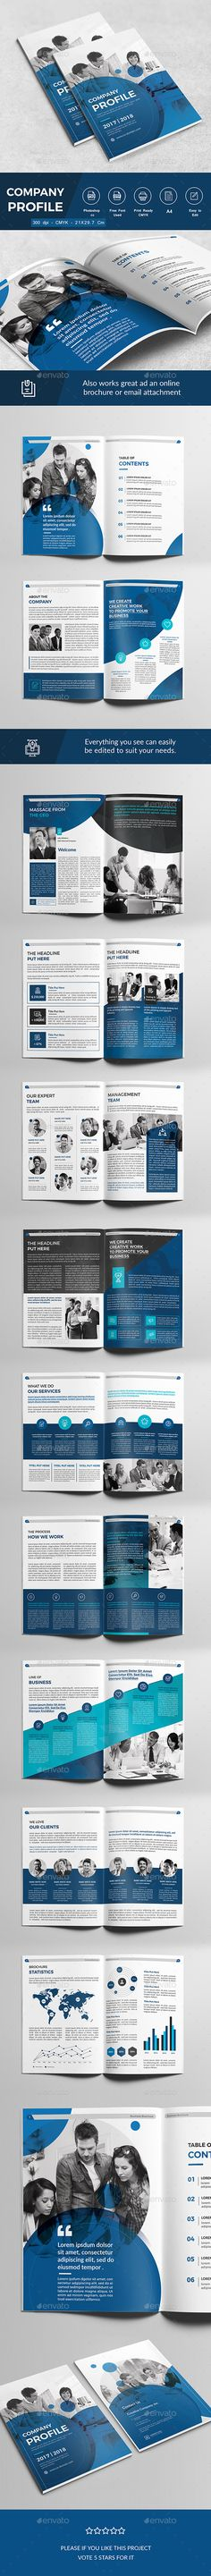 Company Profile Brochure  Corporate Brochures Download Here